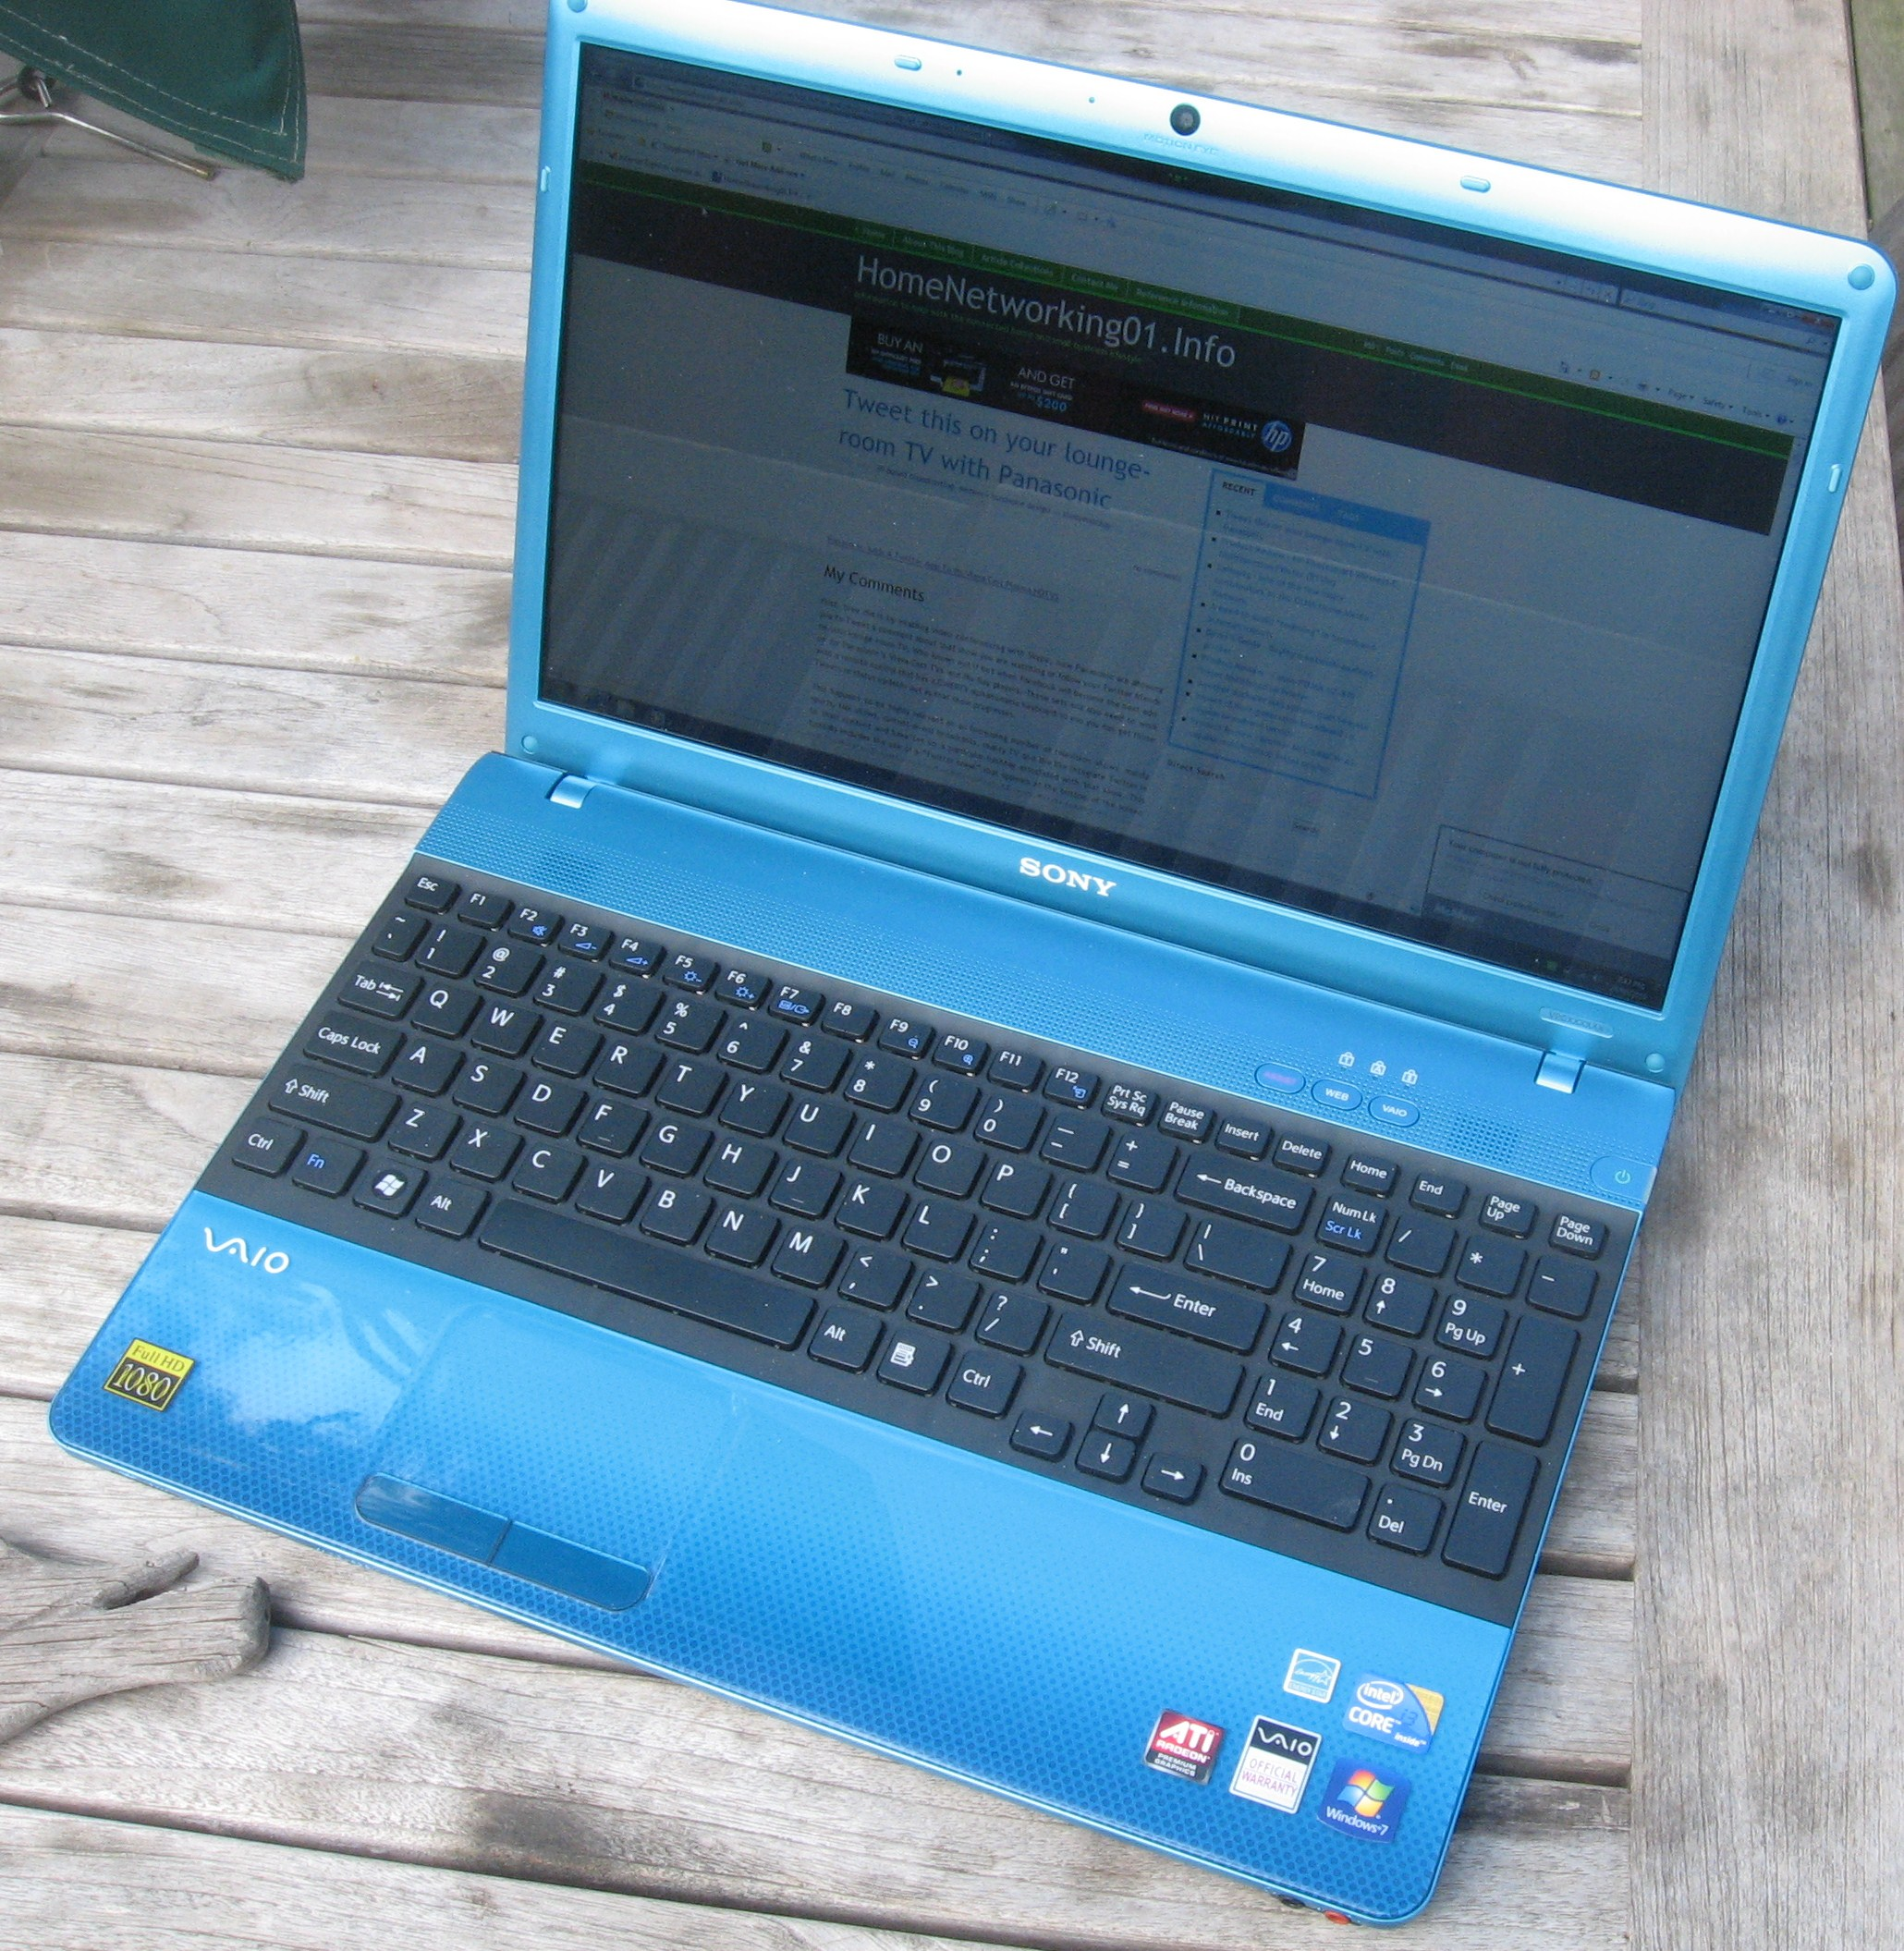 Sony VAIO E-Series laptop